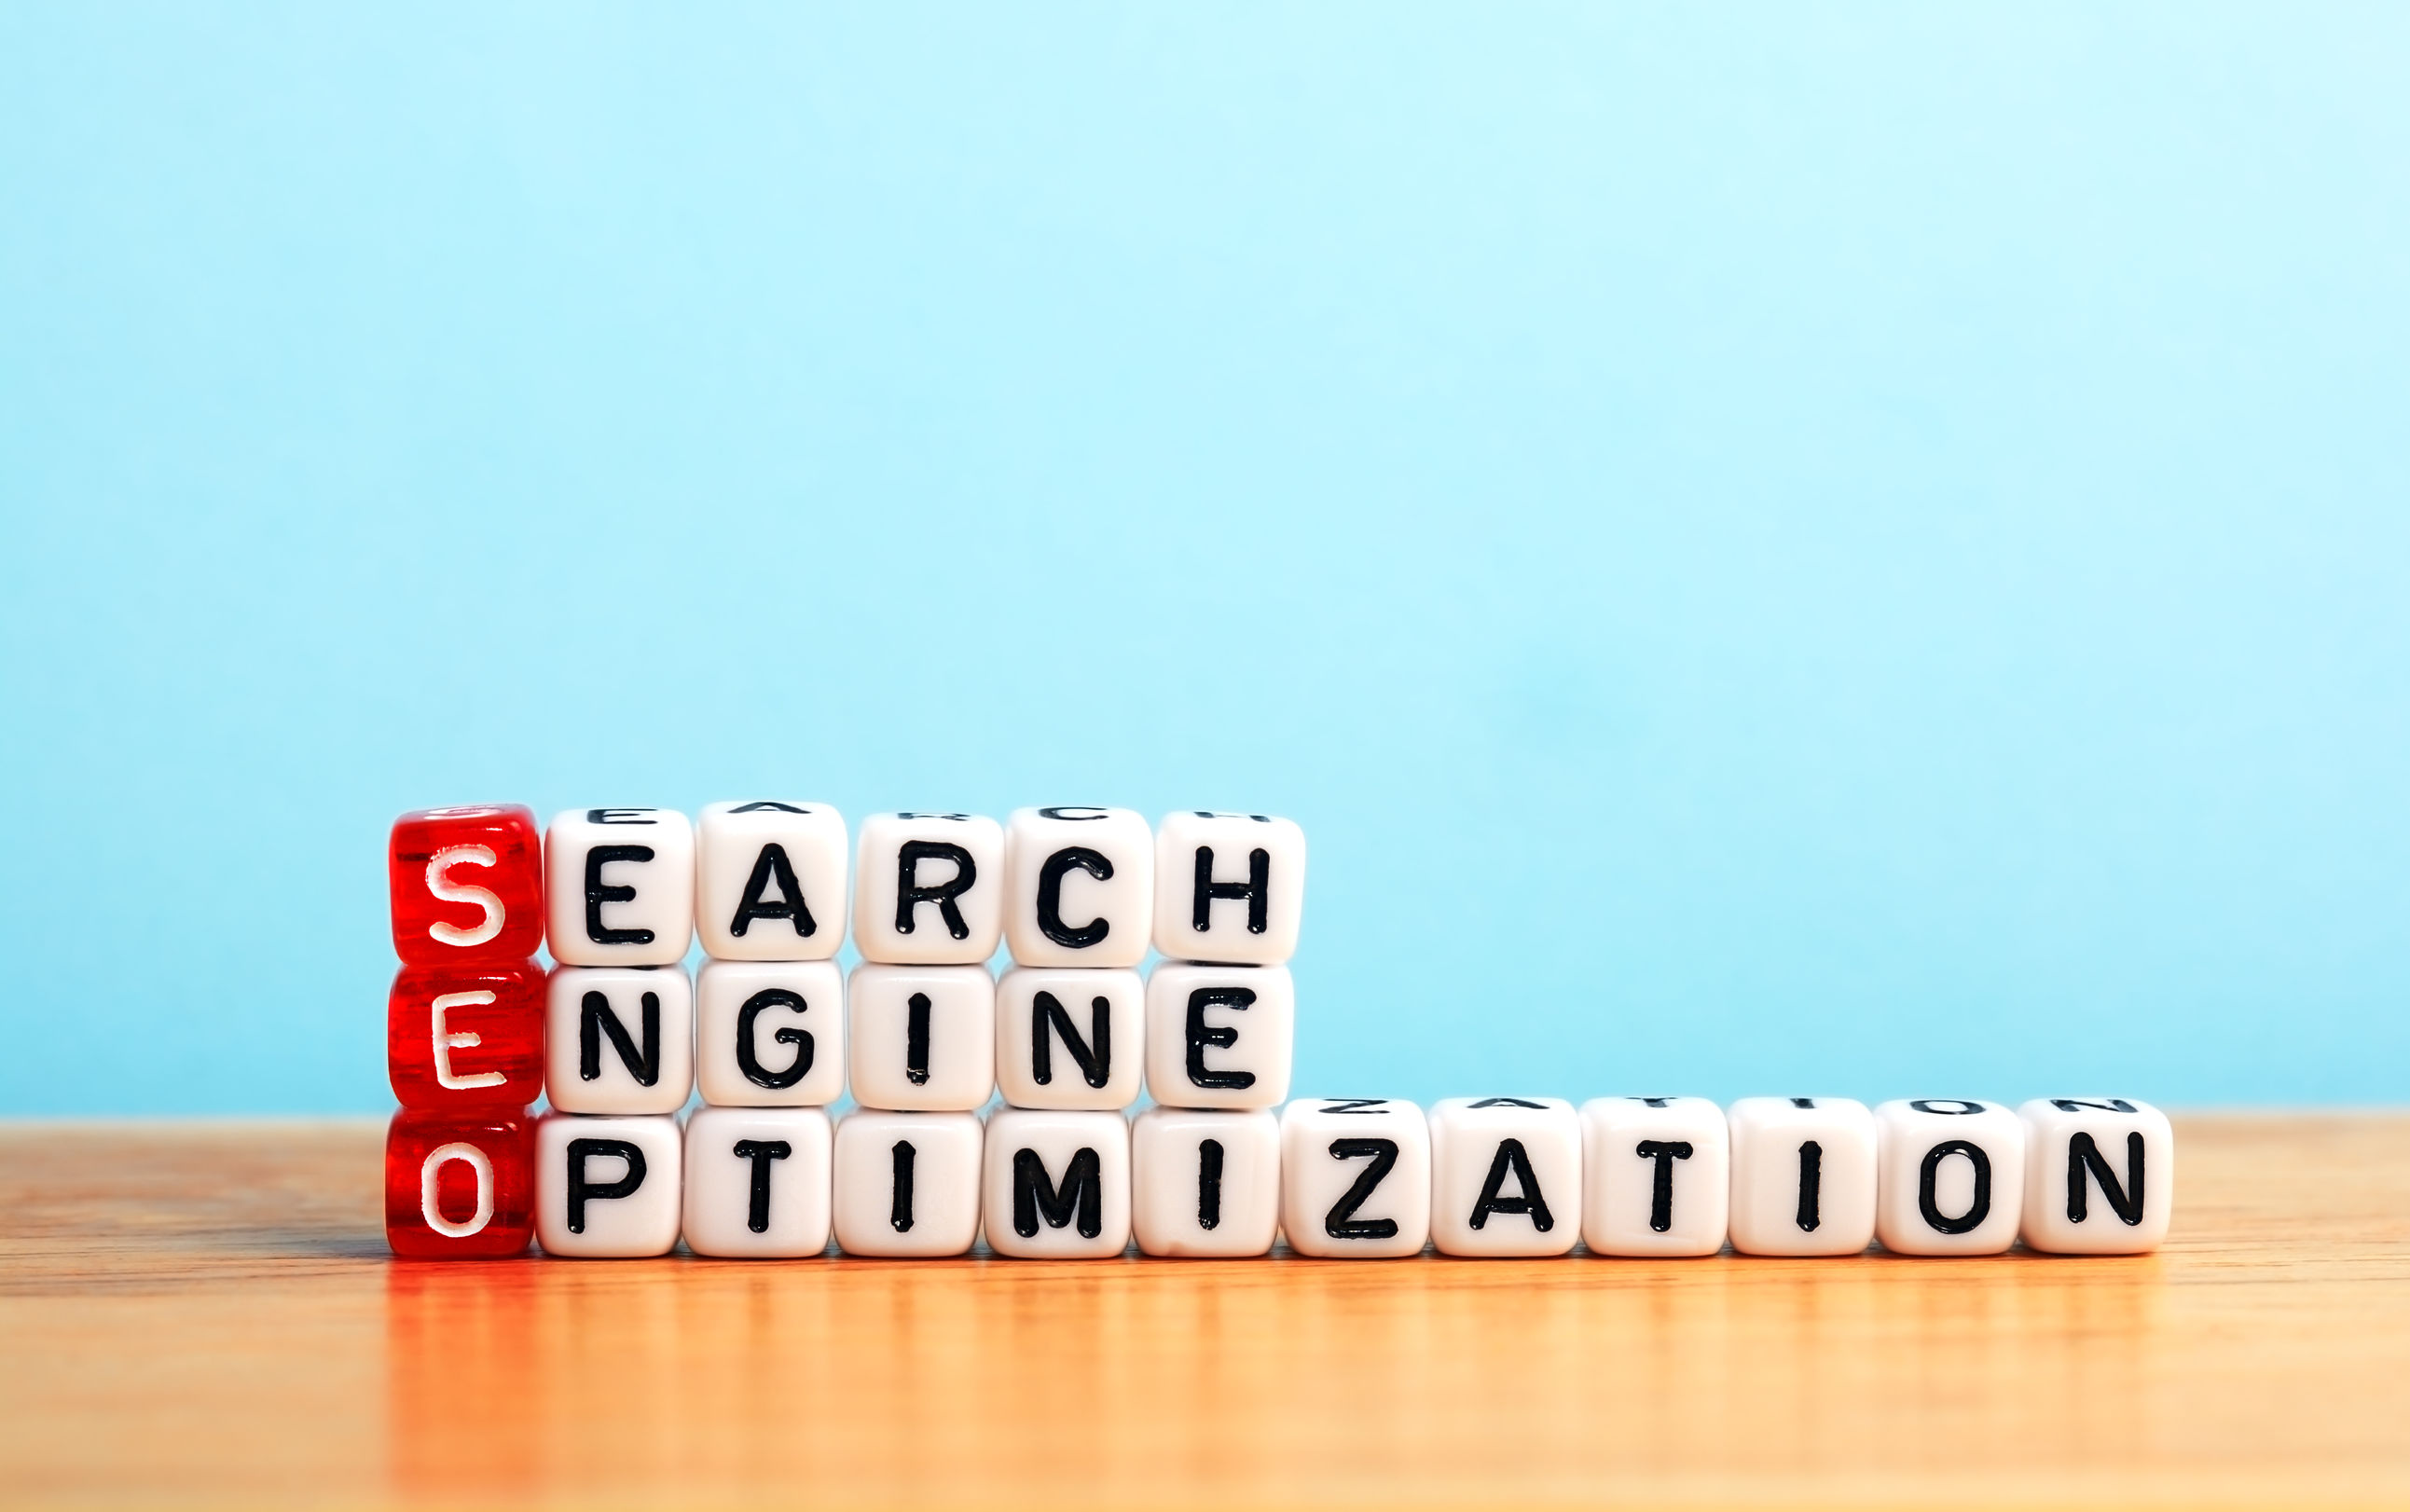 5 QUICK TIPS ABOUT SEARCH ENGINE OPTIMIZATION